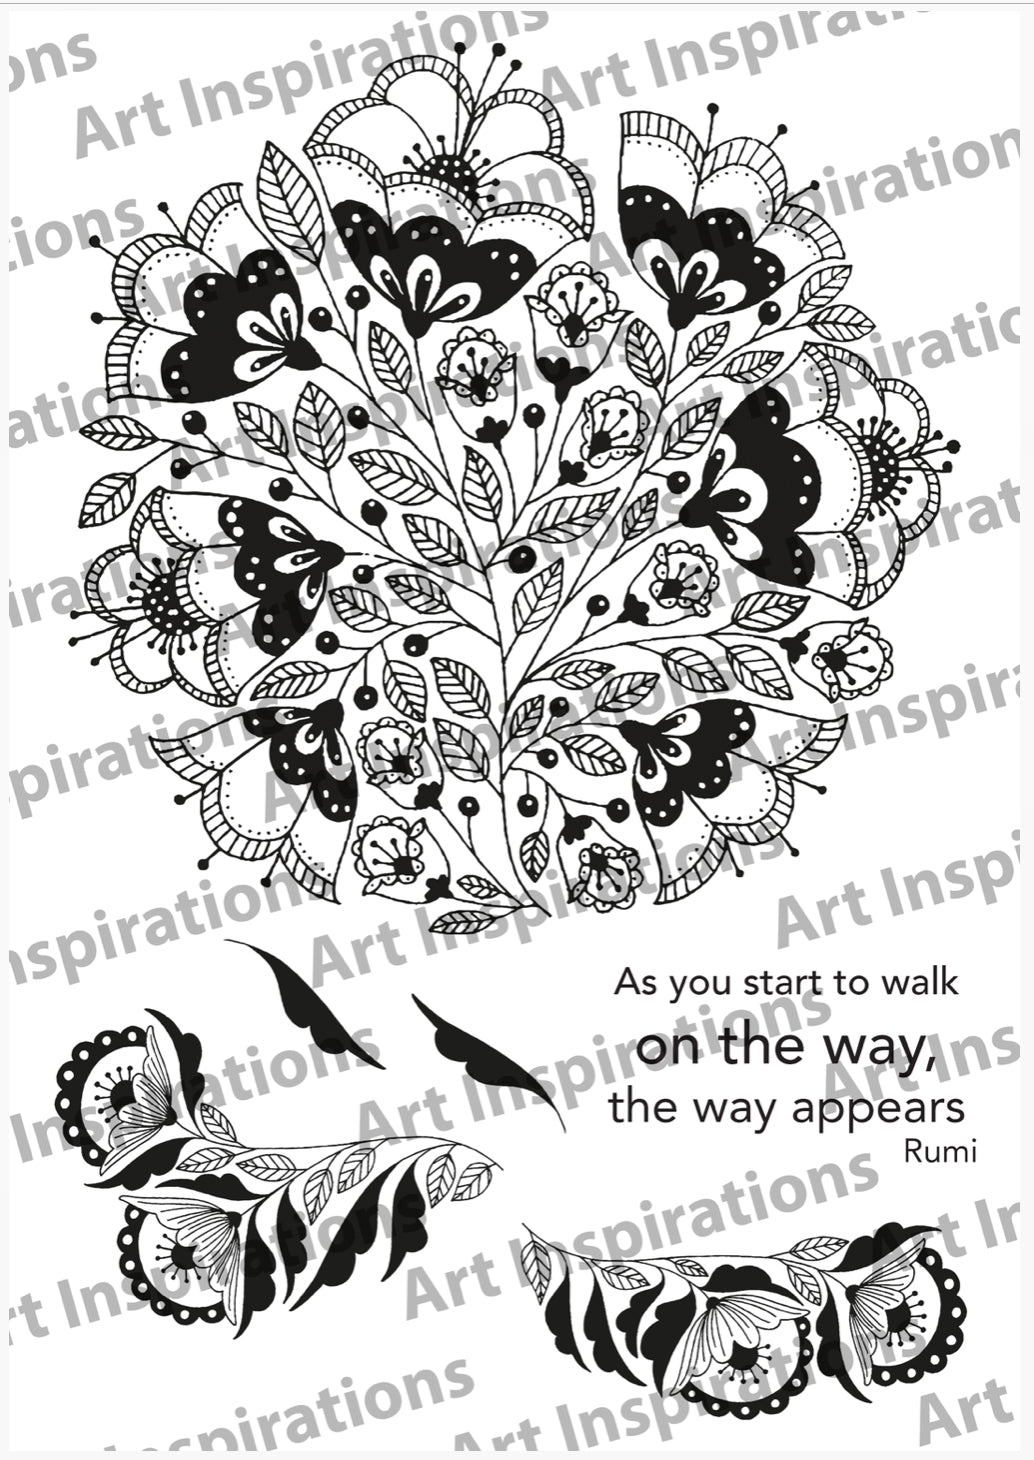 Art Inspirations by Wensdi Made A5 Clear Stamps - As You Start To Walk - 6 Stamps